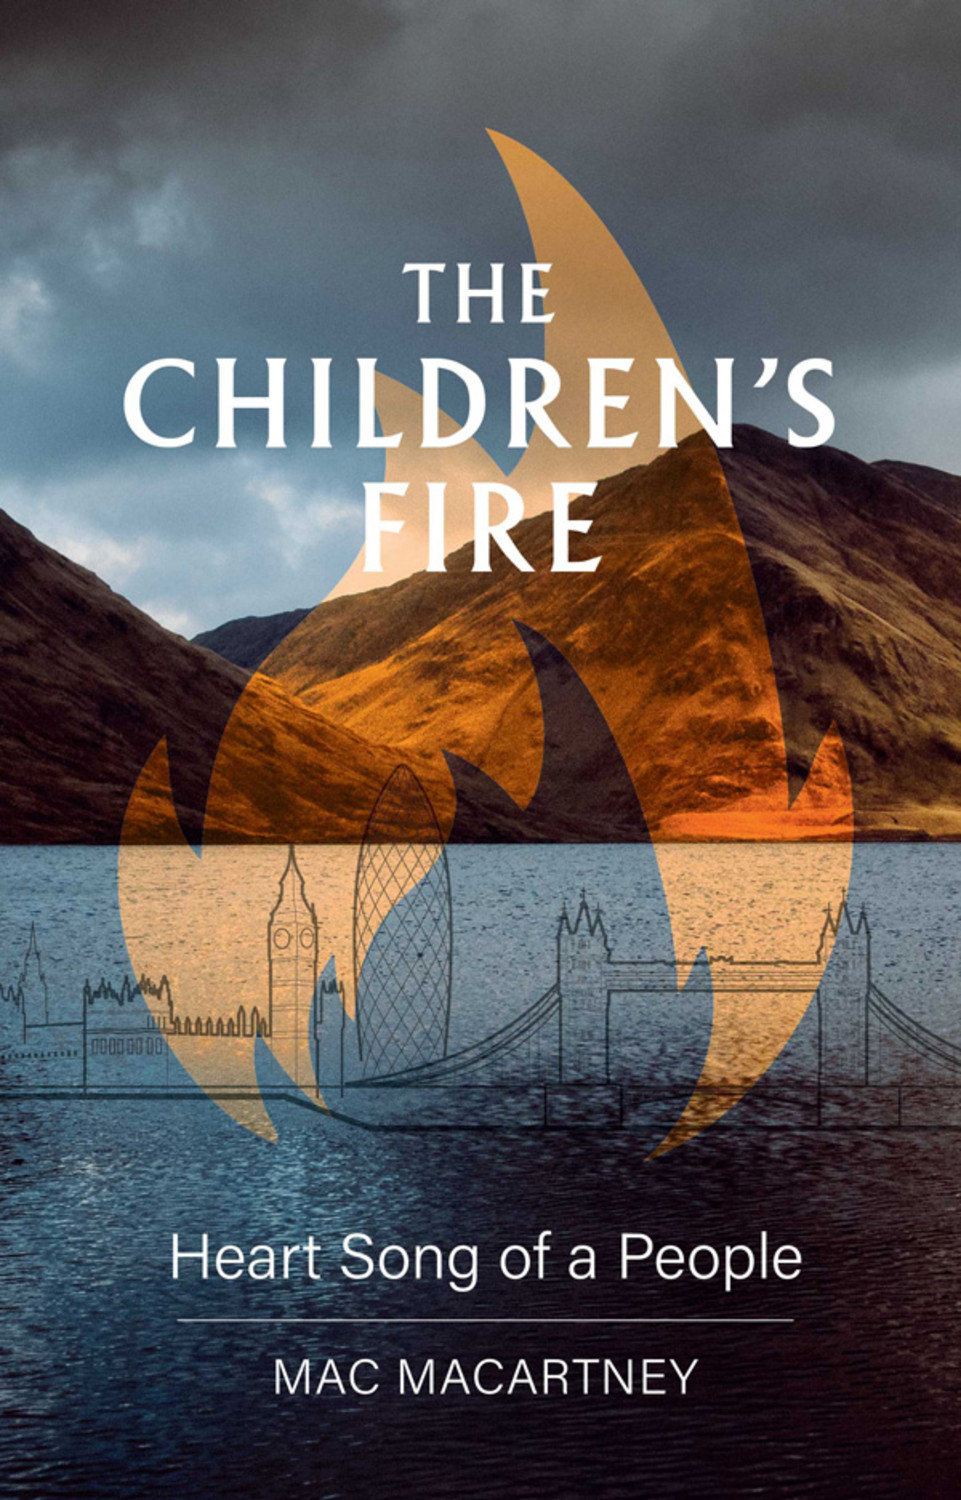 Book cover for The Children's Fire:  Heart song of a people a book by Mac  Macartney